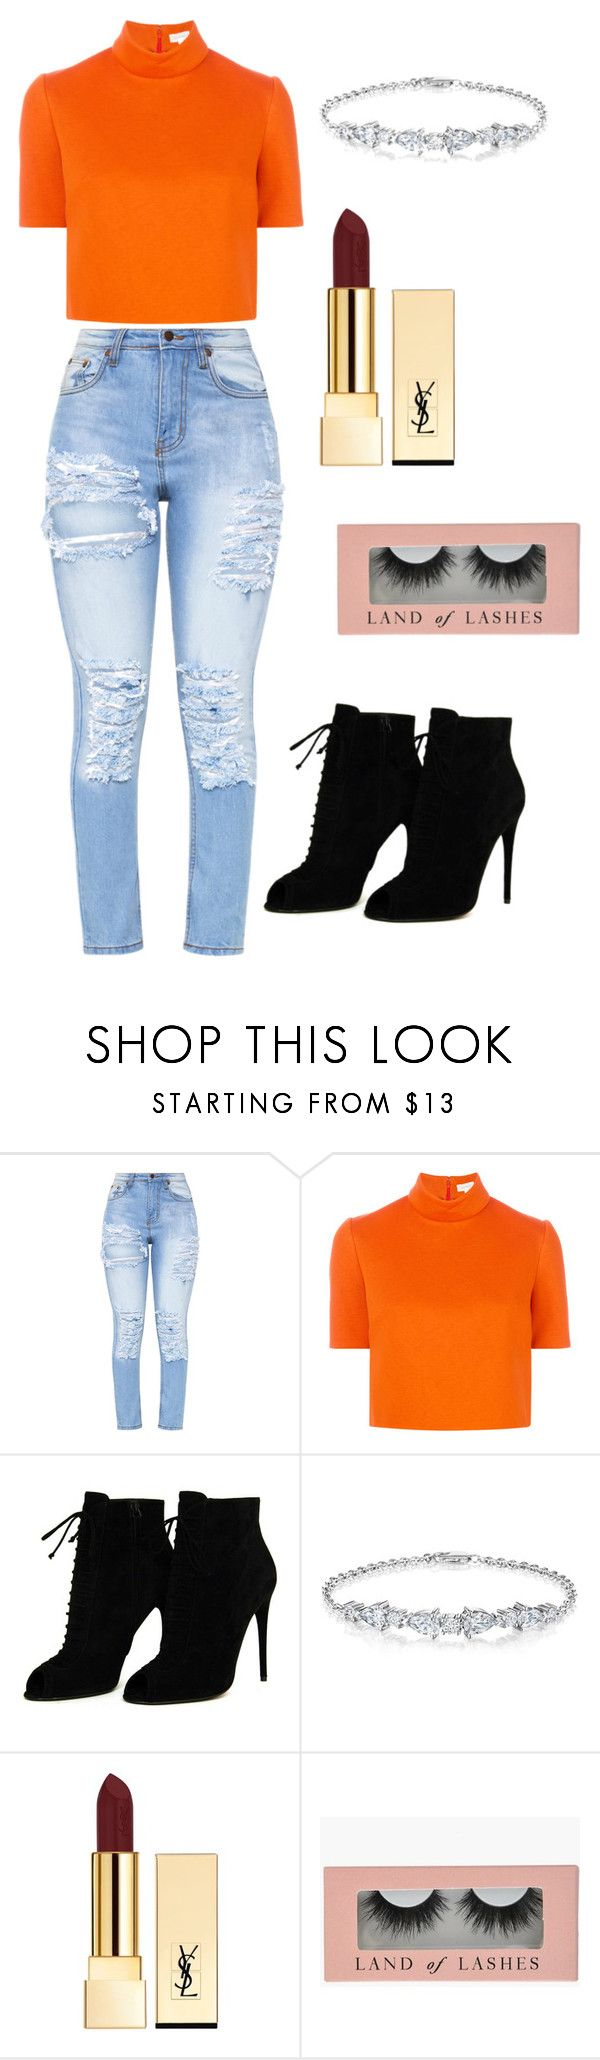 """""""Untitled #61"""" by aya-rosee ❤ liked on Polyvore featuring Delpozo, Tom Ford and Yves Saint Laurent"""